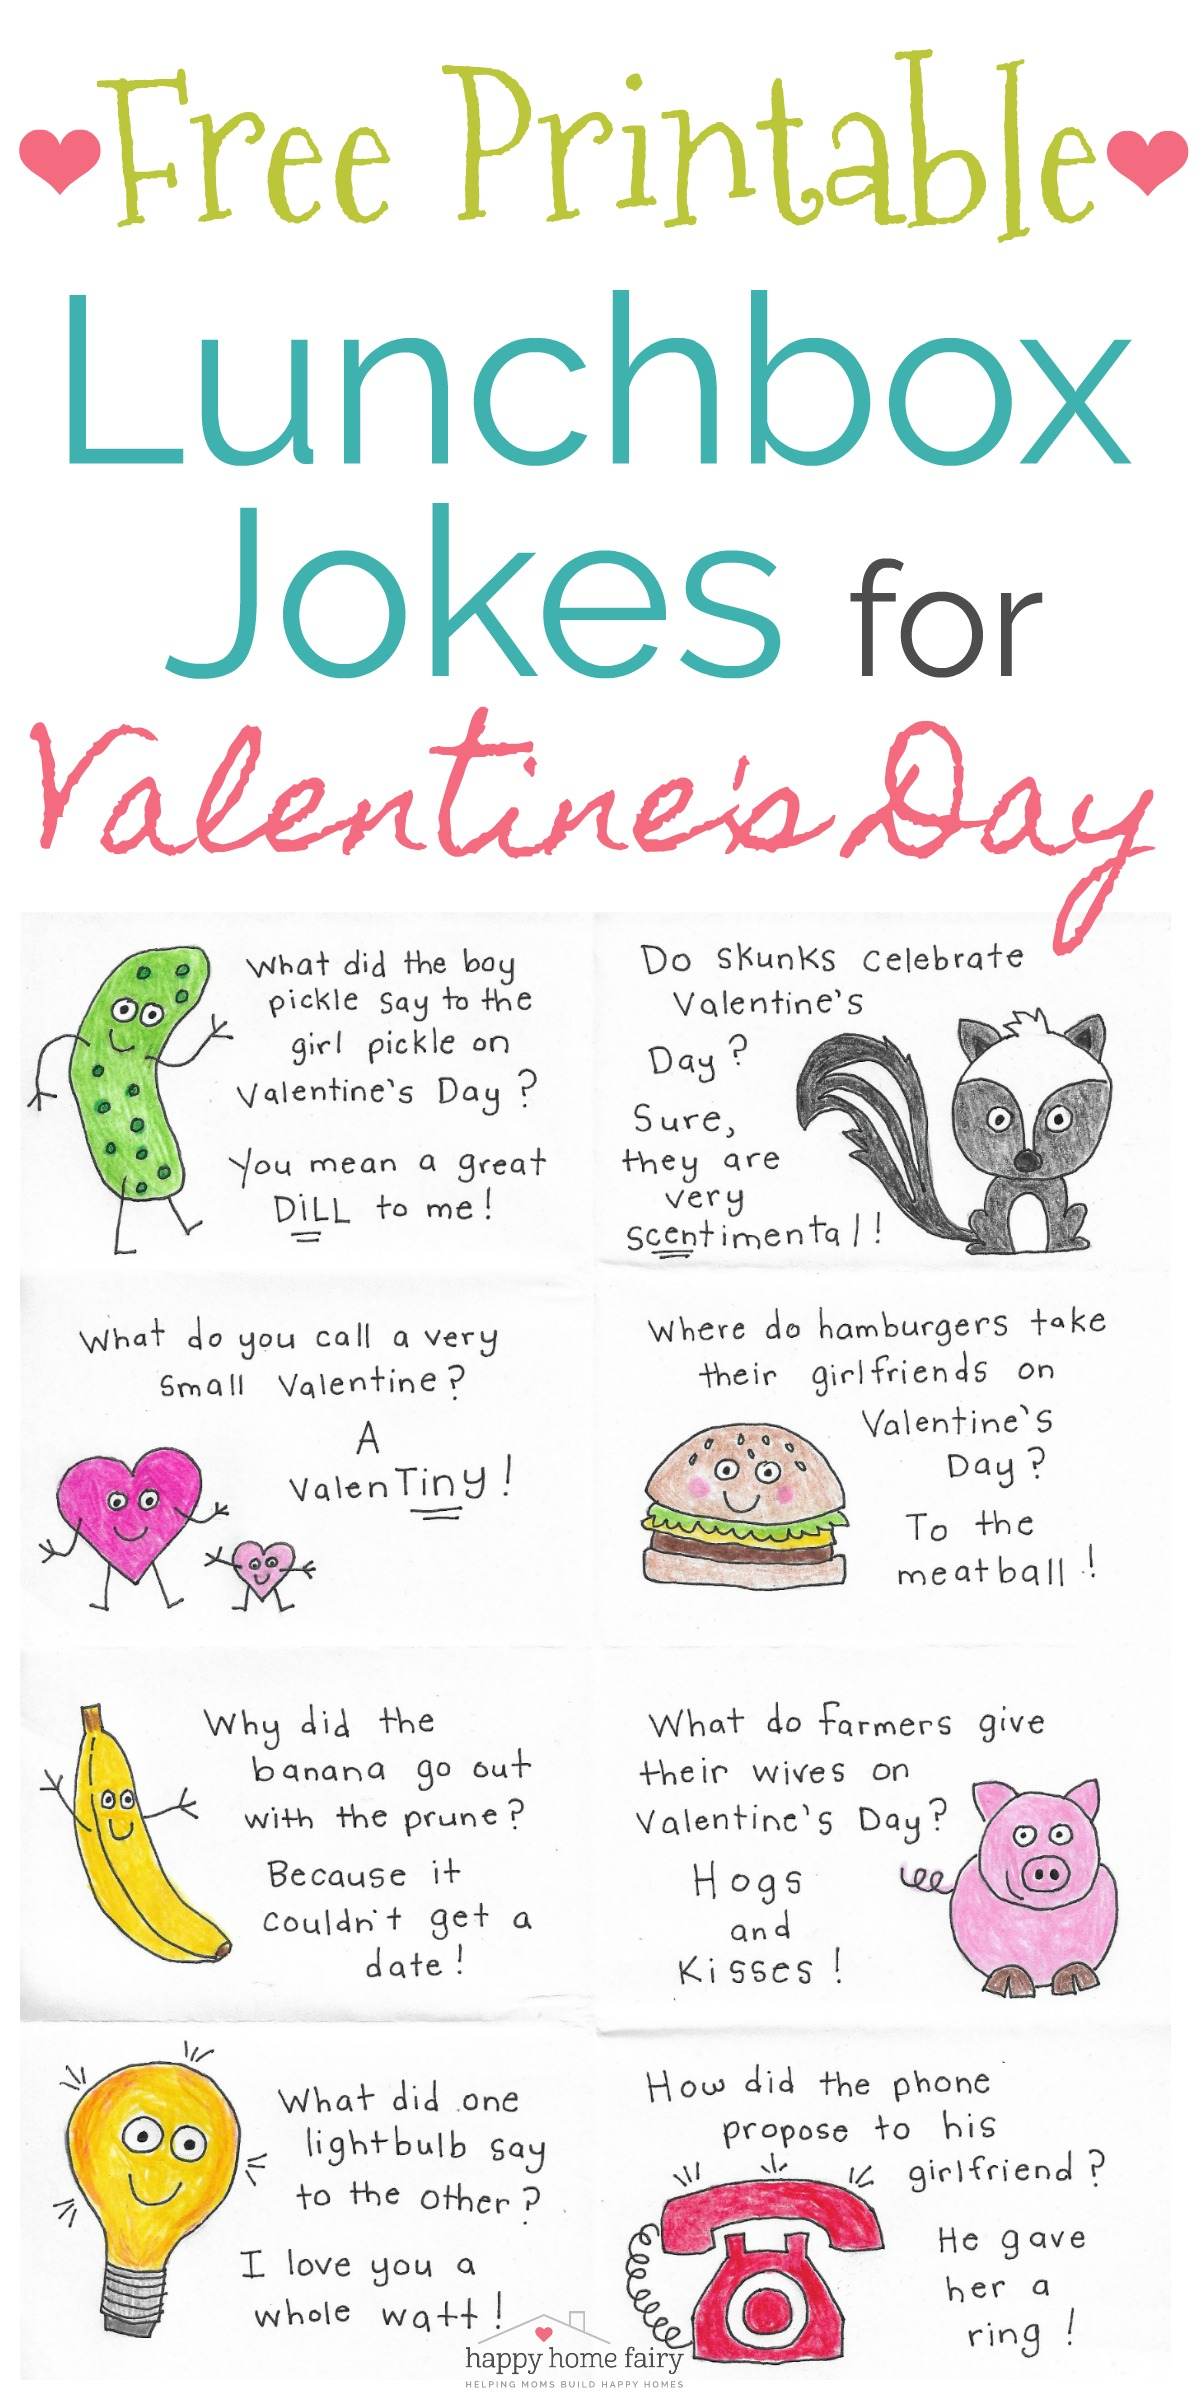 photograph about Printable Lunchbox Jokes called Lunchbox Jokes for Valentines Working day - Cost-free Printable! - Delighted